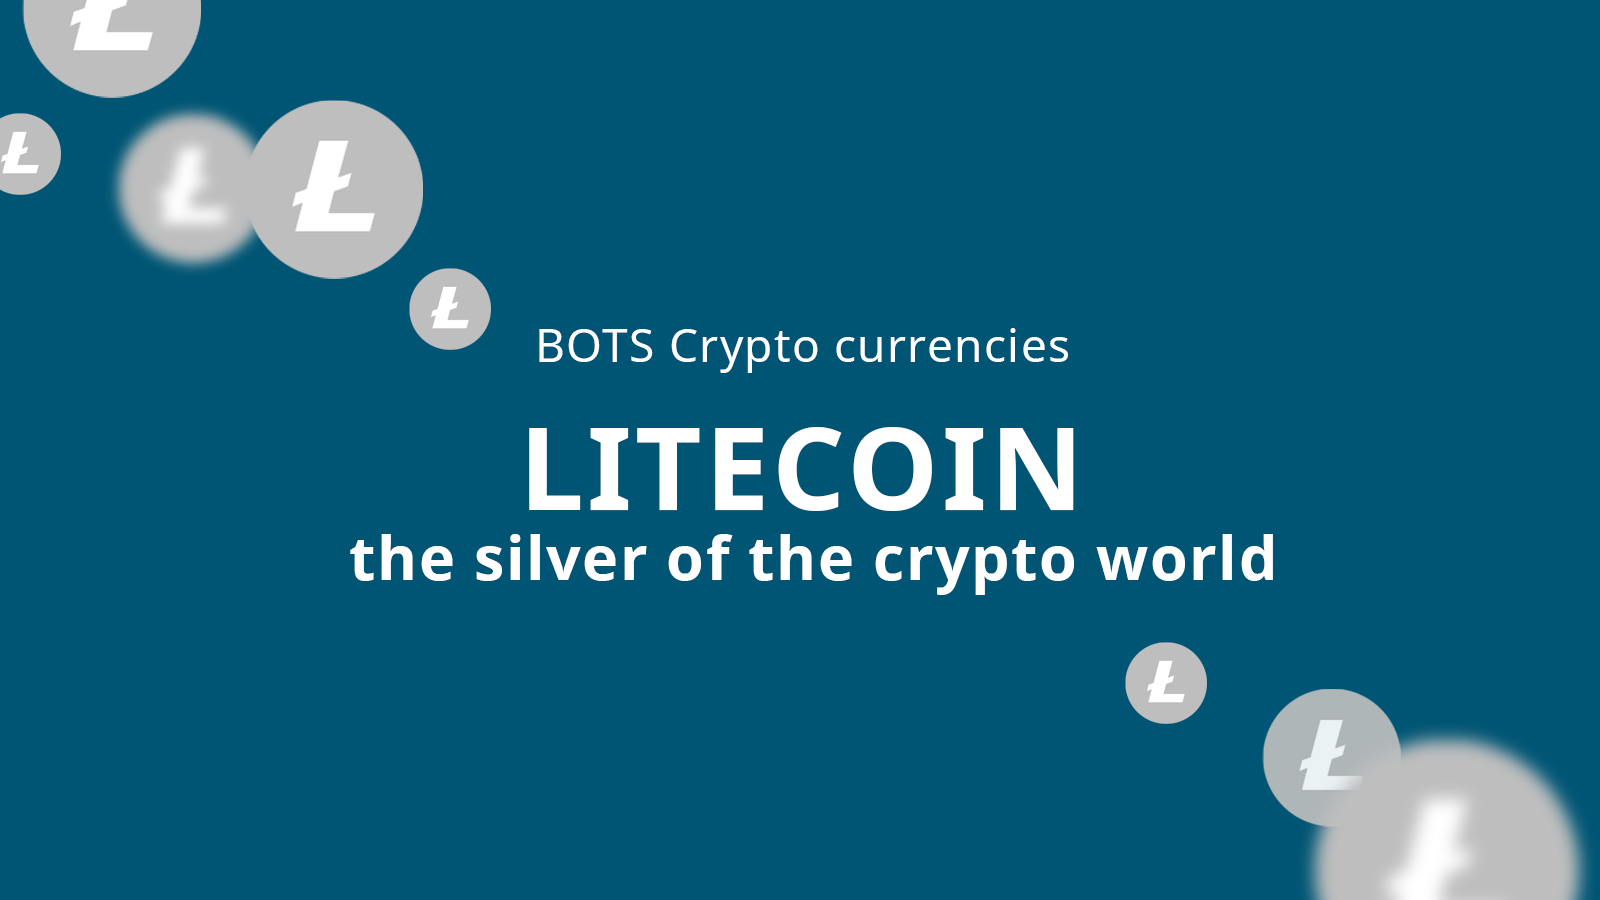 Litecoin (LTC), the silver of the cryptoworld